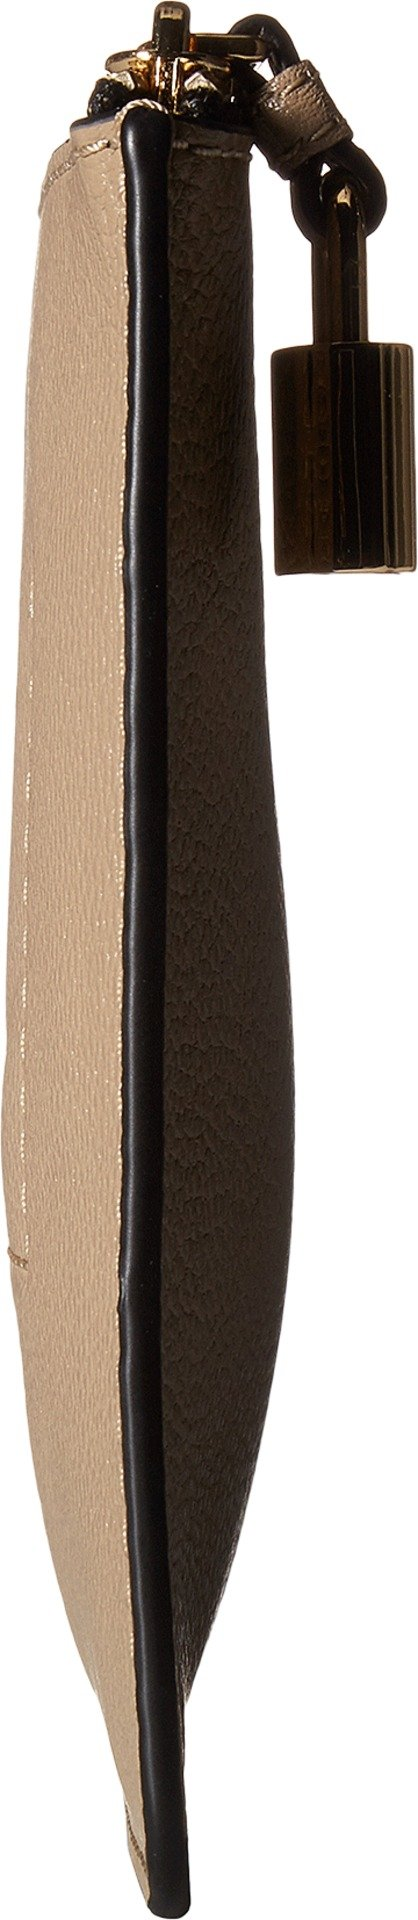 Marc Jacobs Women's The Grind Medium Pouch Light Slate One Size by Marc Jacobs (Image #3)